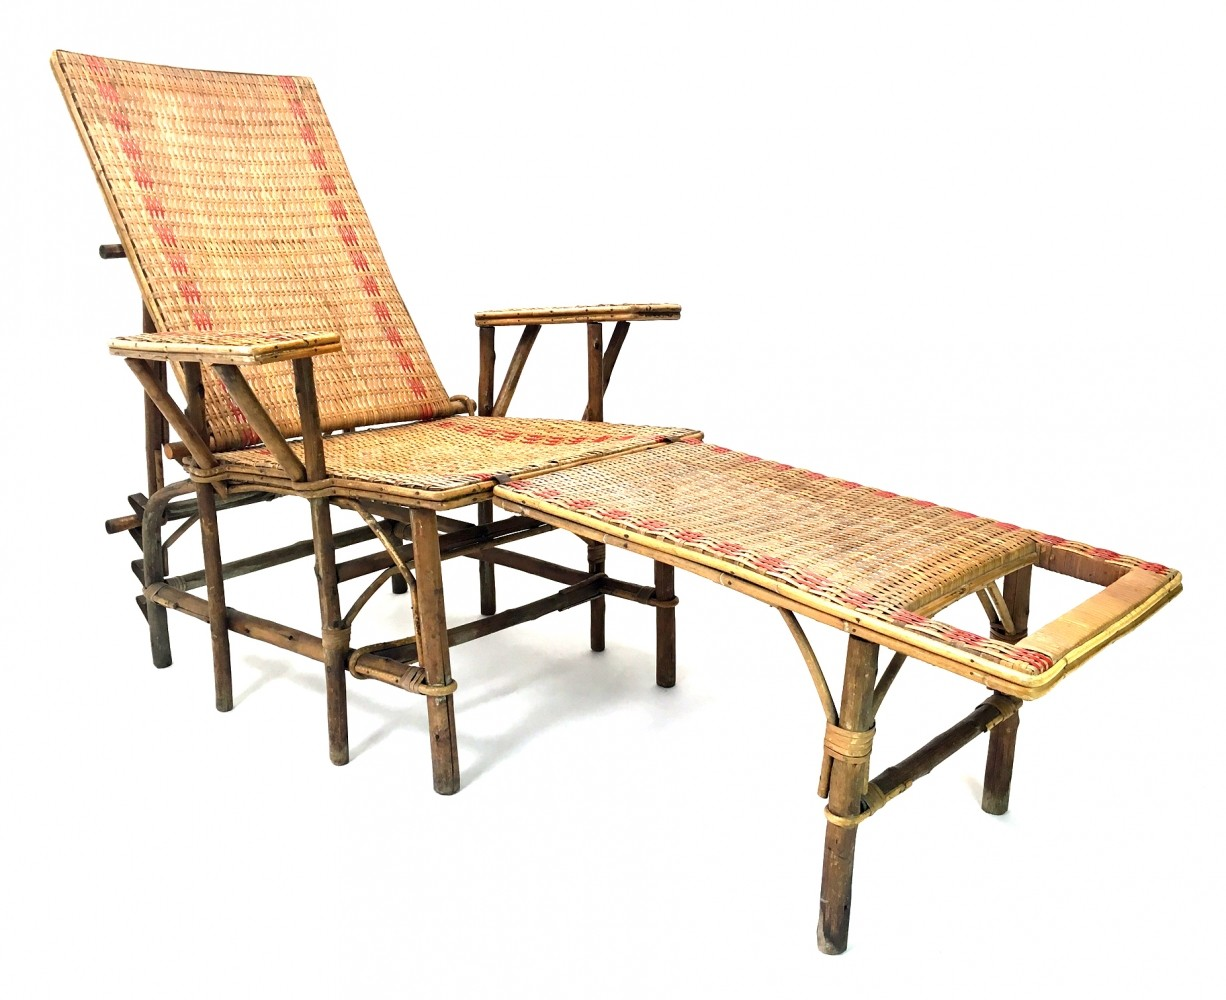 French wicker bamboo chaise longue with footrest 1920s for Chaise longue bambou